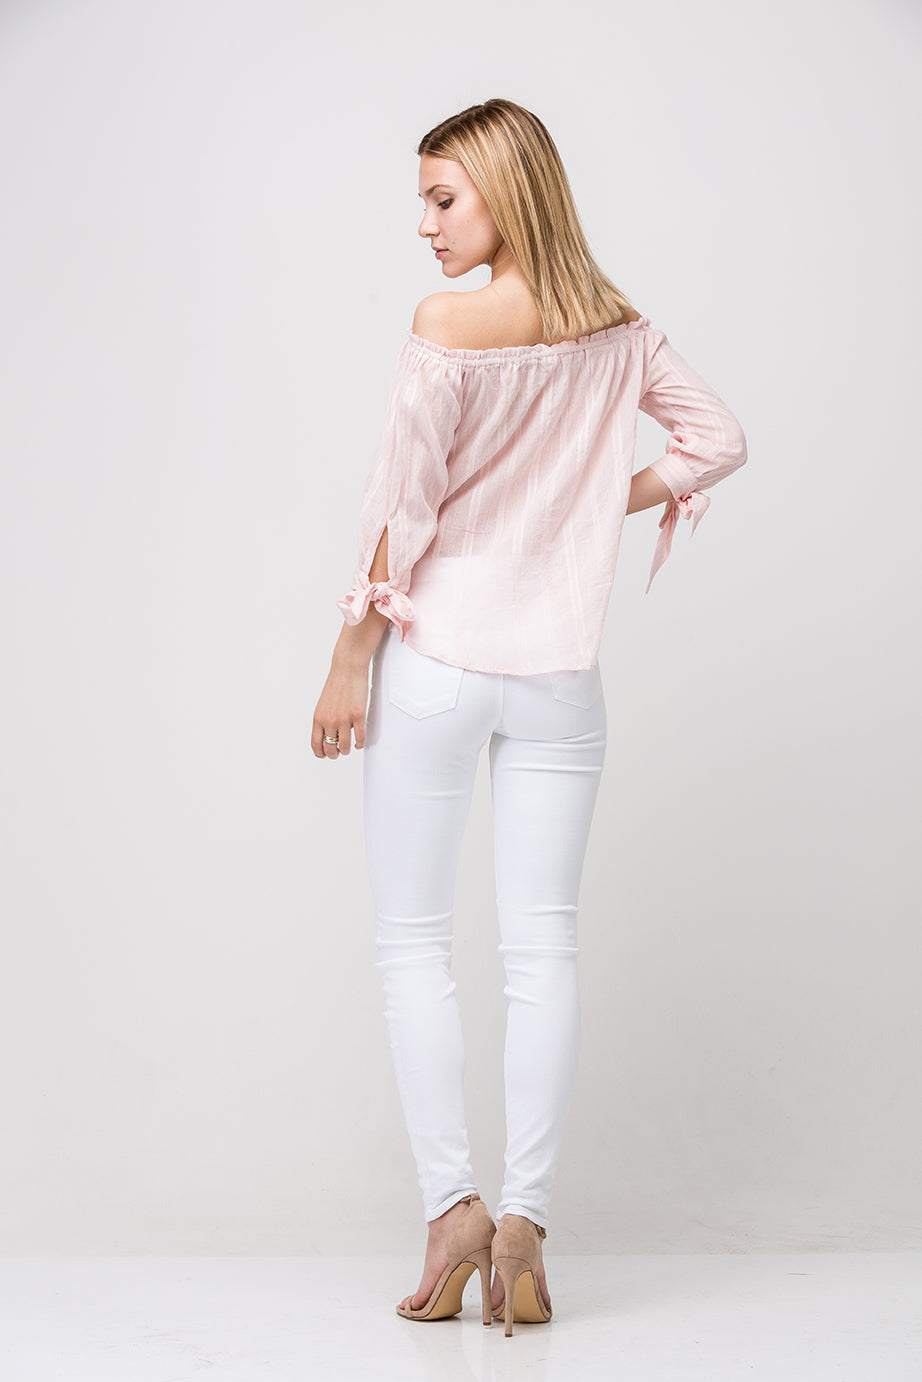 Ginger Top - Pink